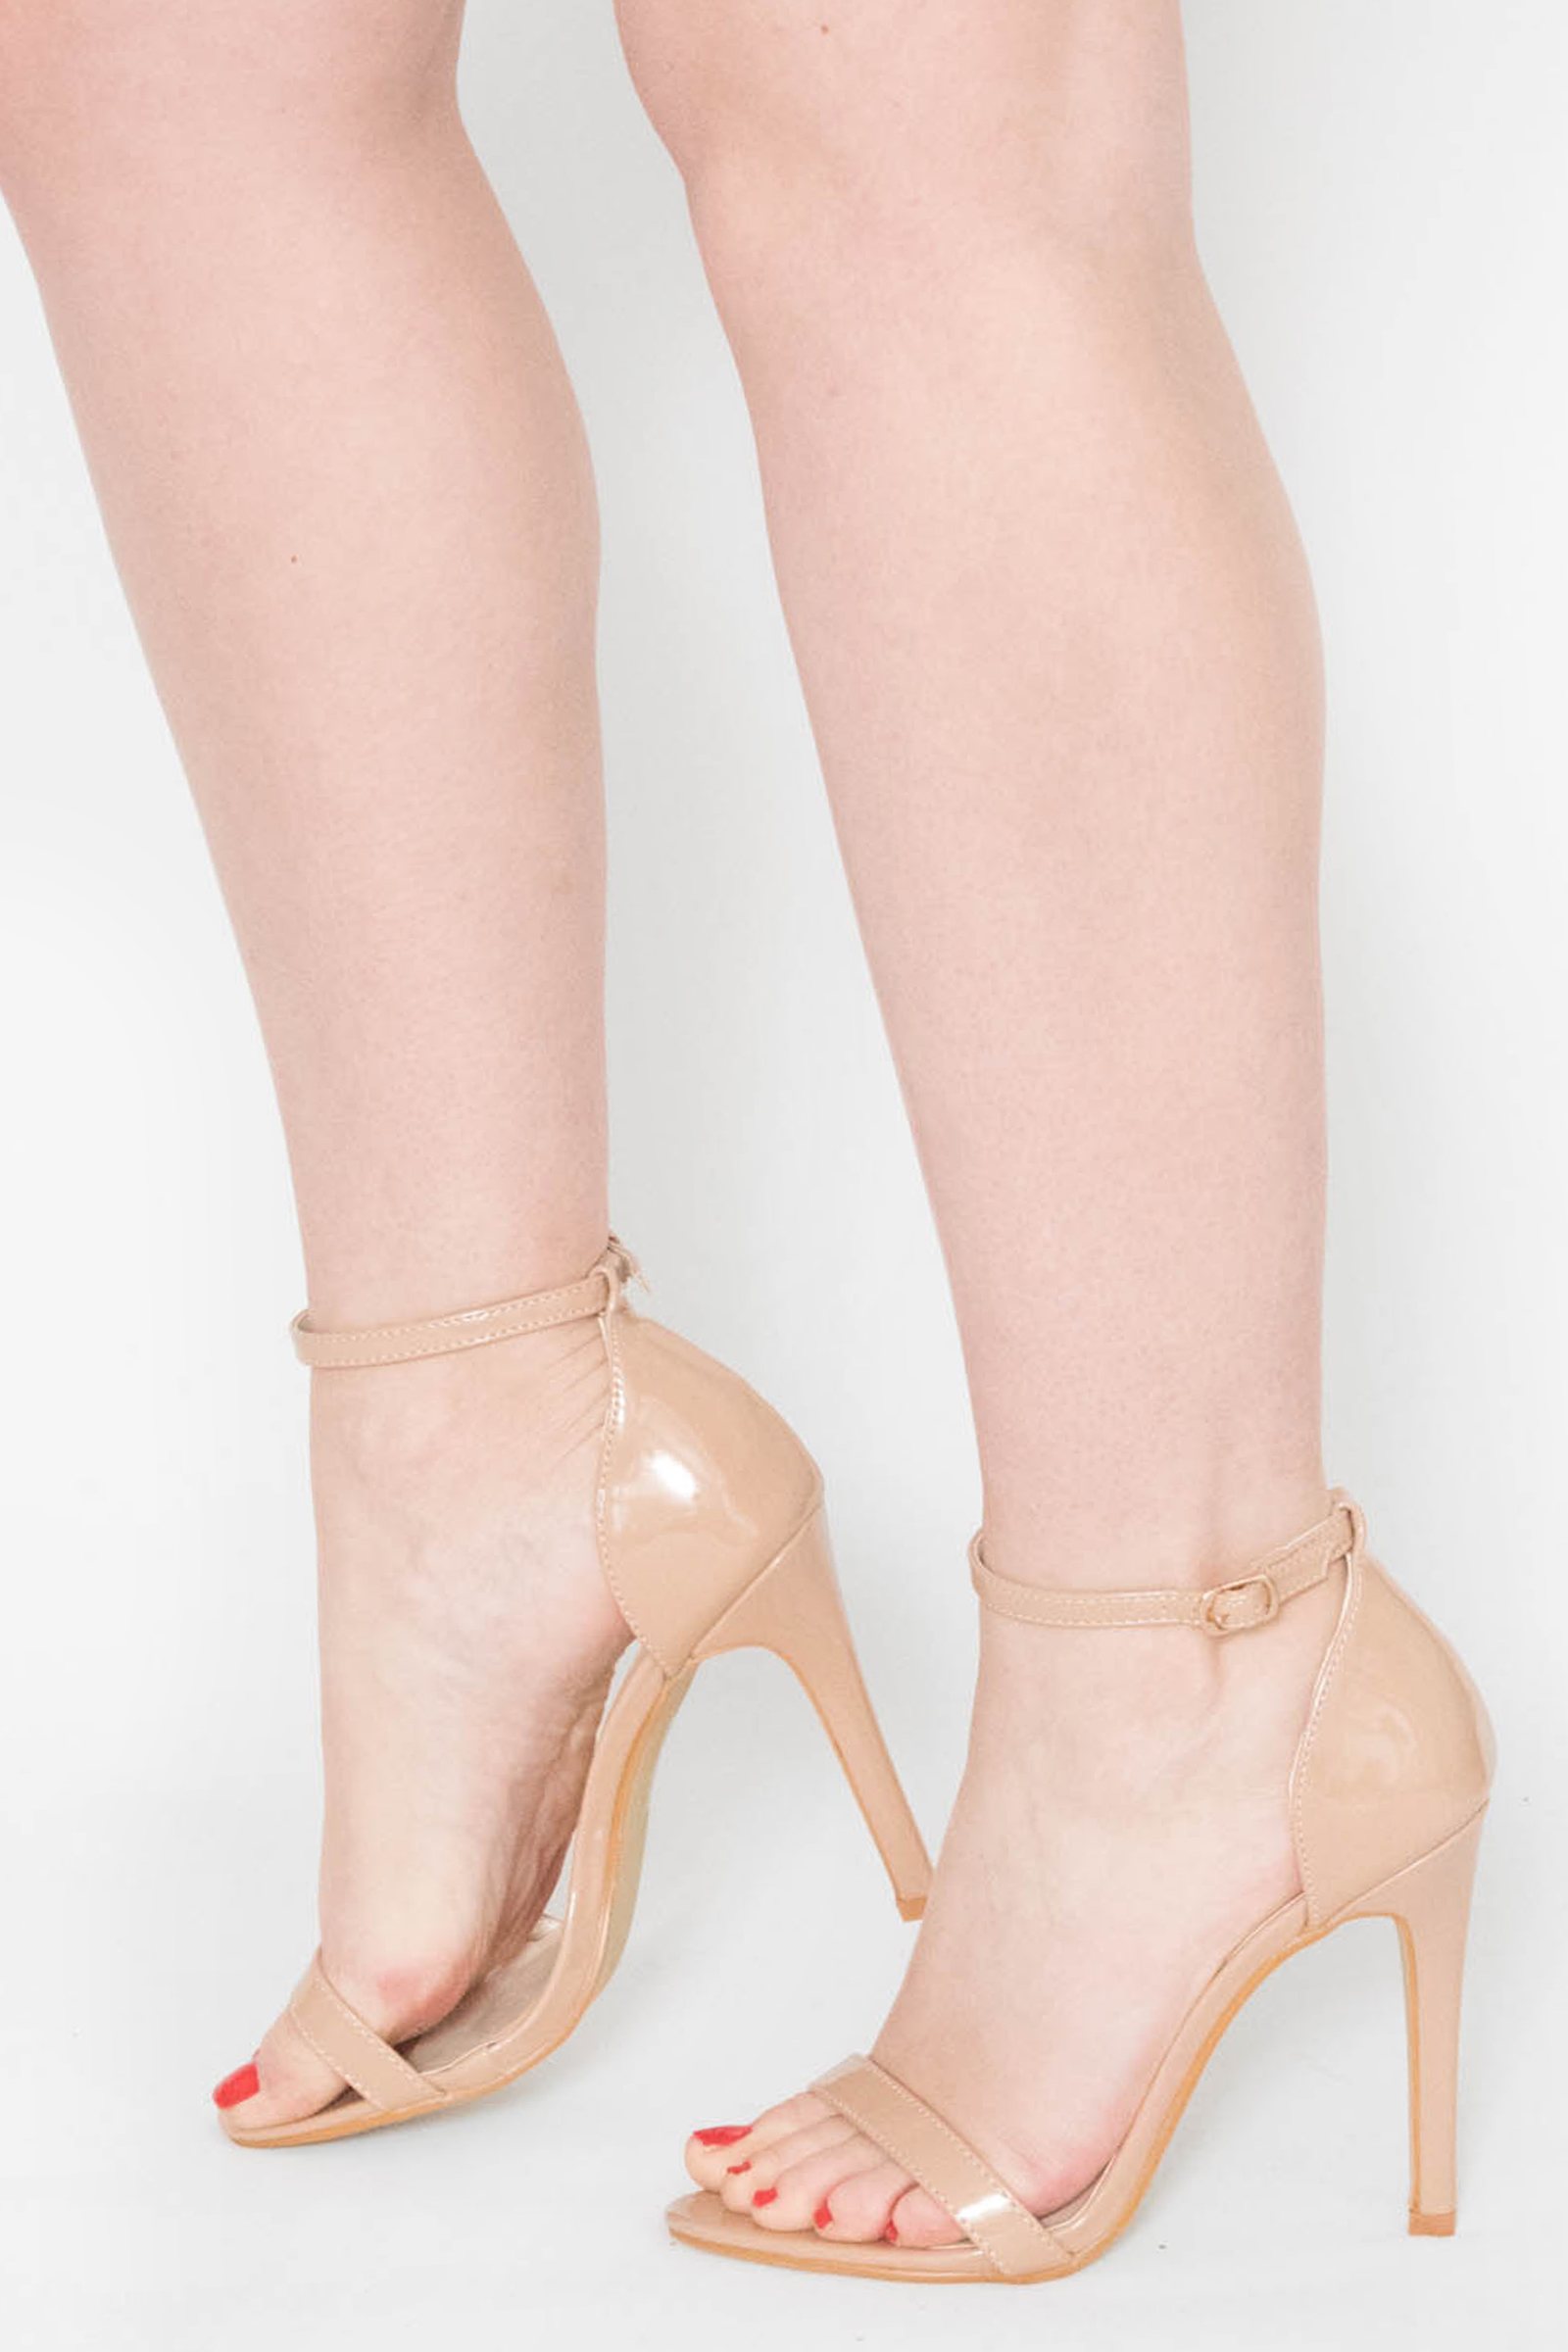 4a3b90112e2 Fleur Nude Patent Barely There Heels